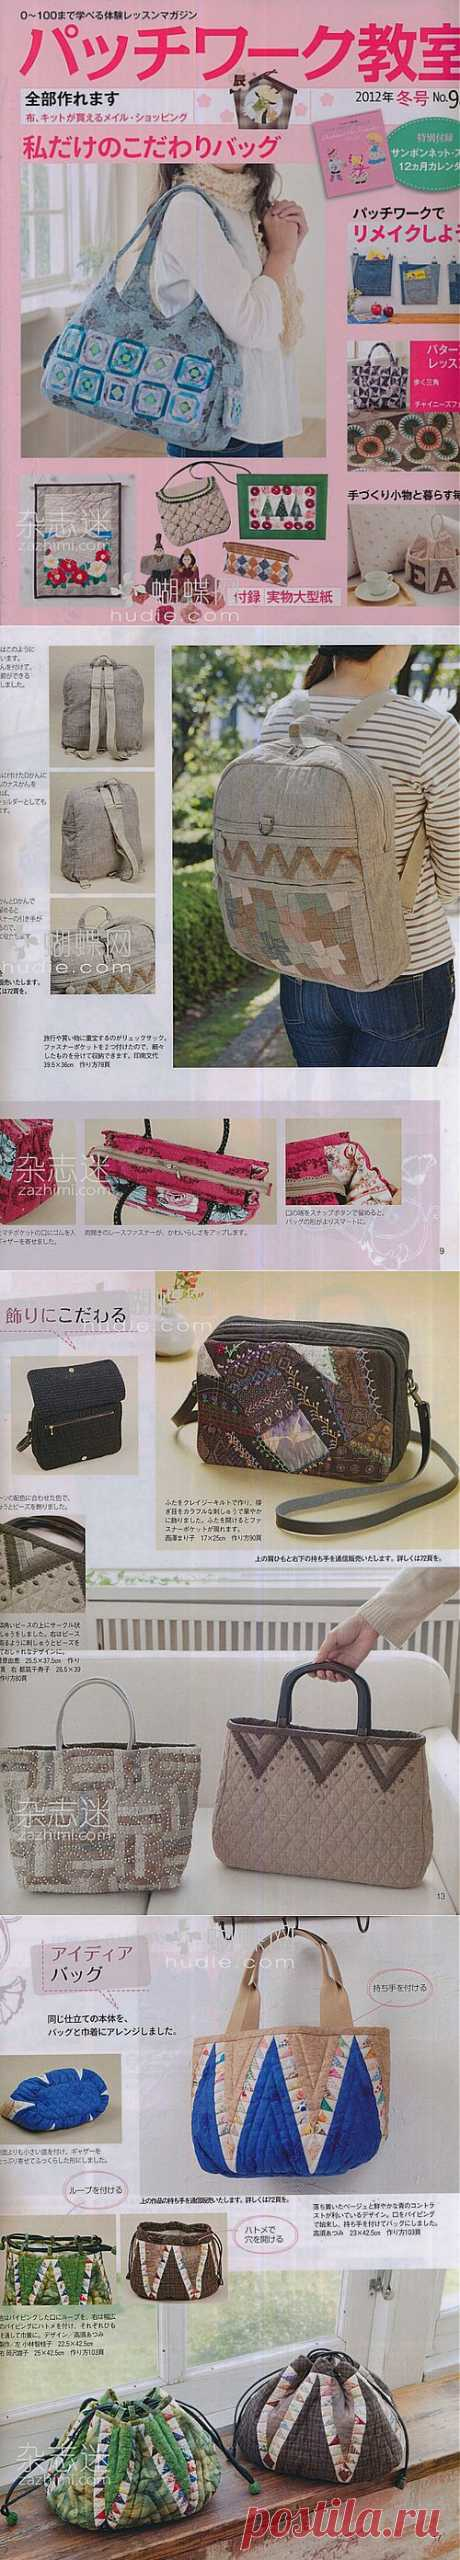 THE JAPANESE MAGAZINE ON SCRAPPY SEWING. IT IS A LOT OF BAGS.